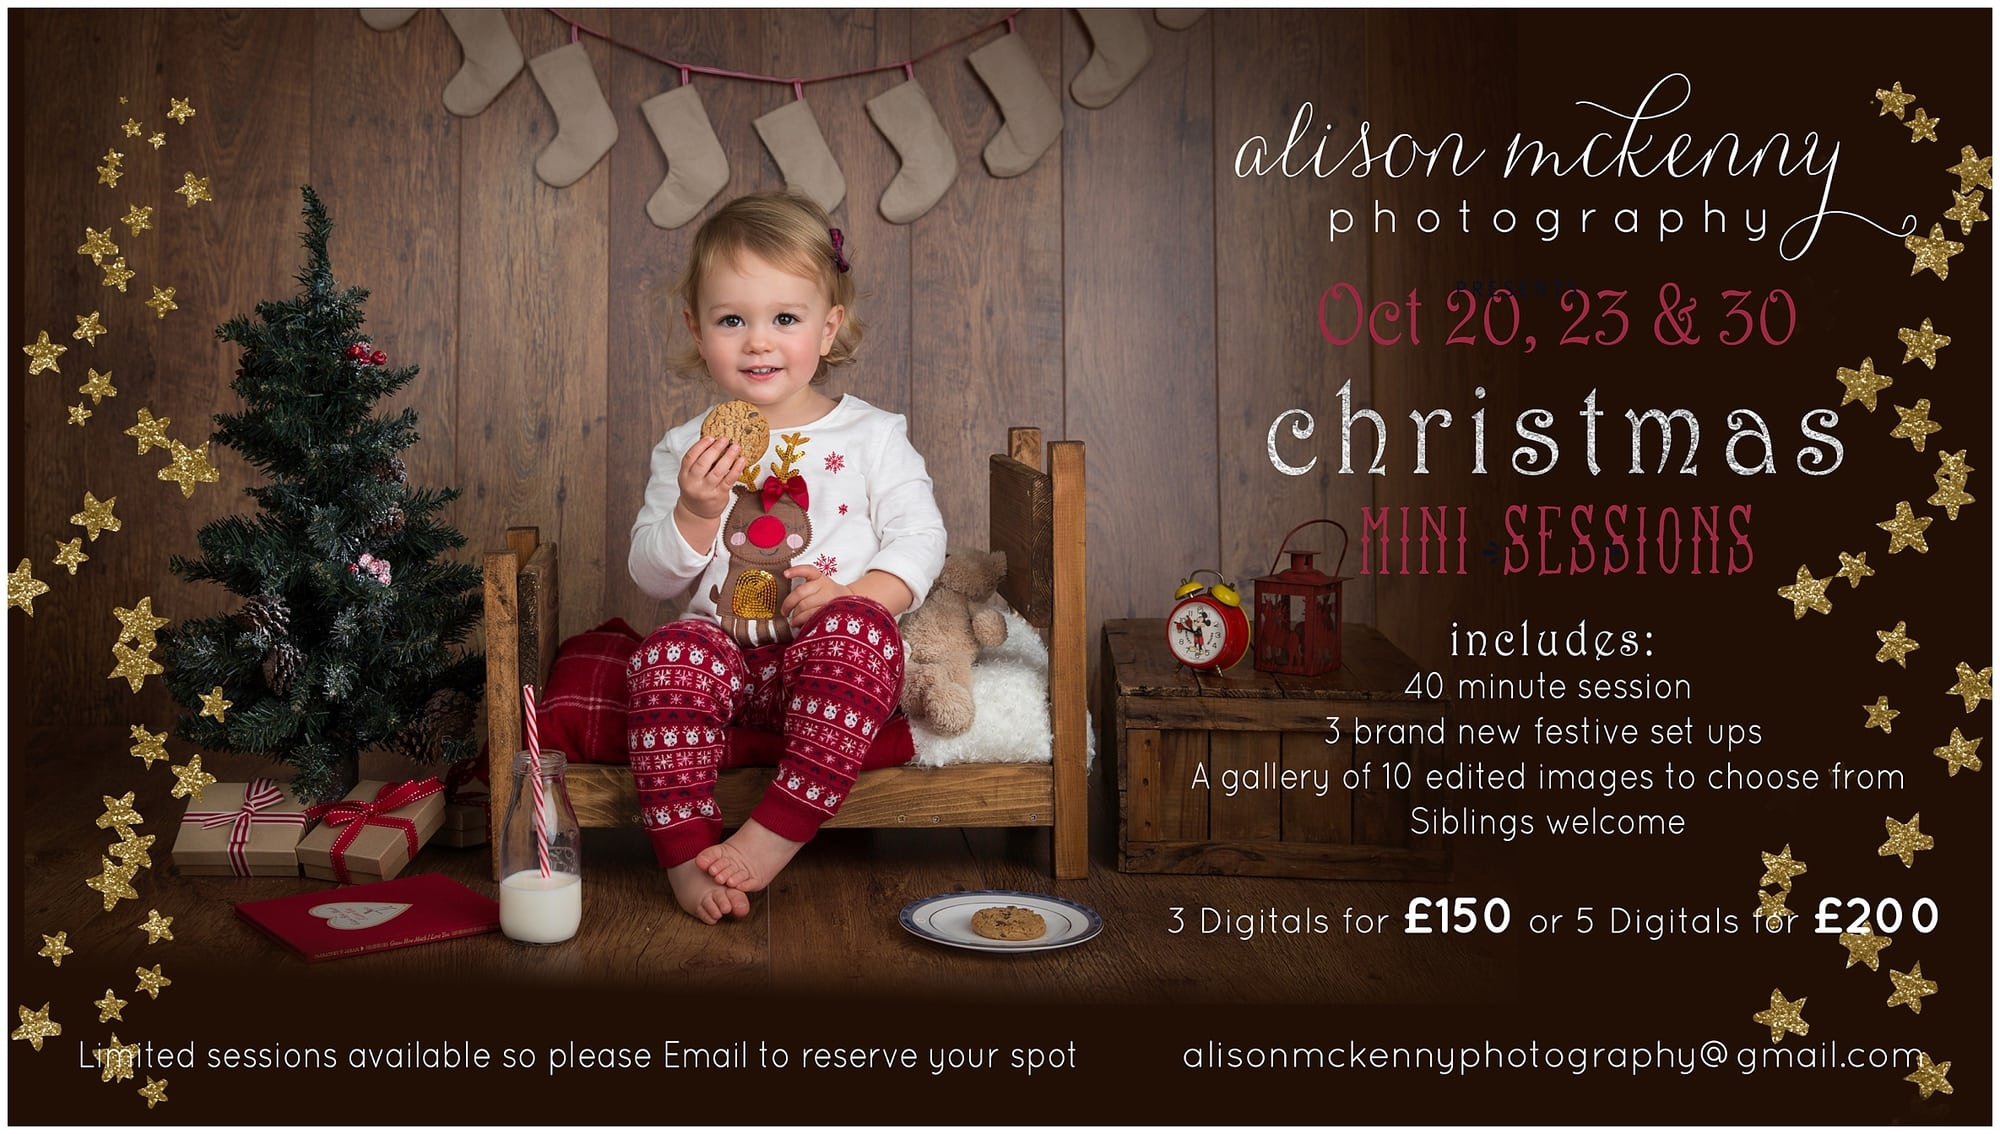 Christmas Mini Sessions.Christmas Mini Sessions 2017 Alison Mckenny Photography